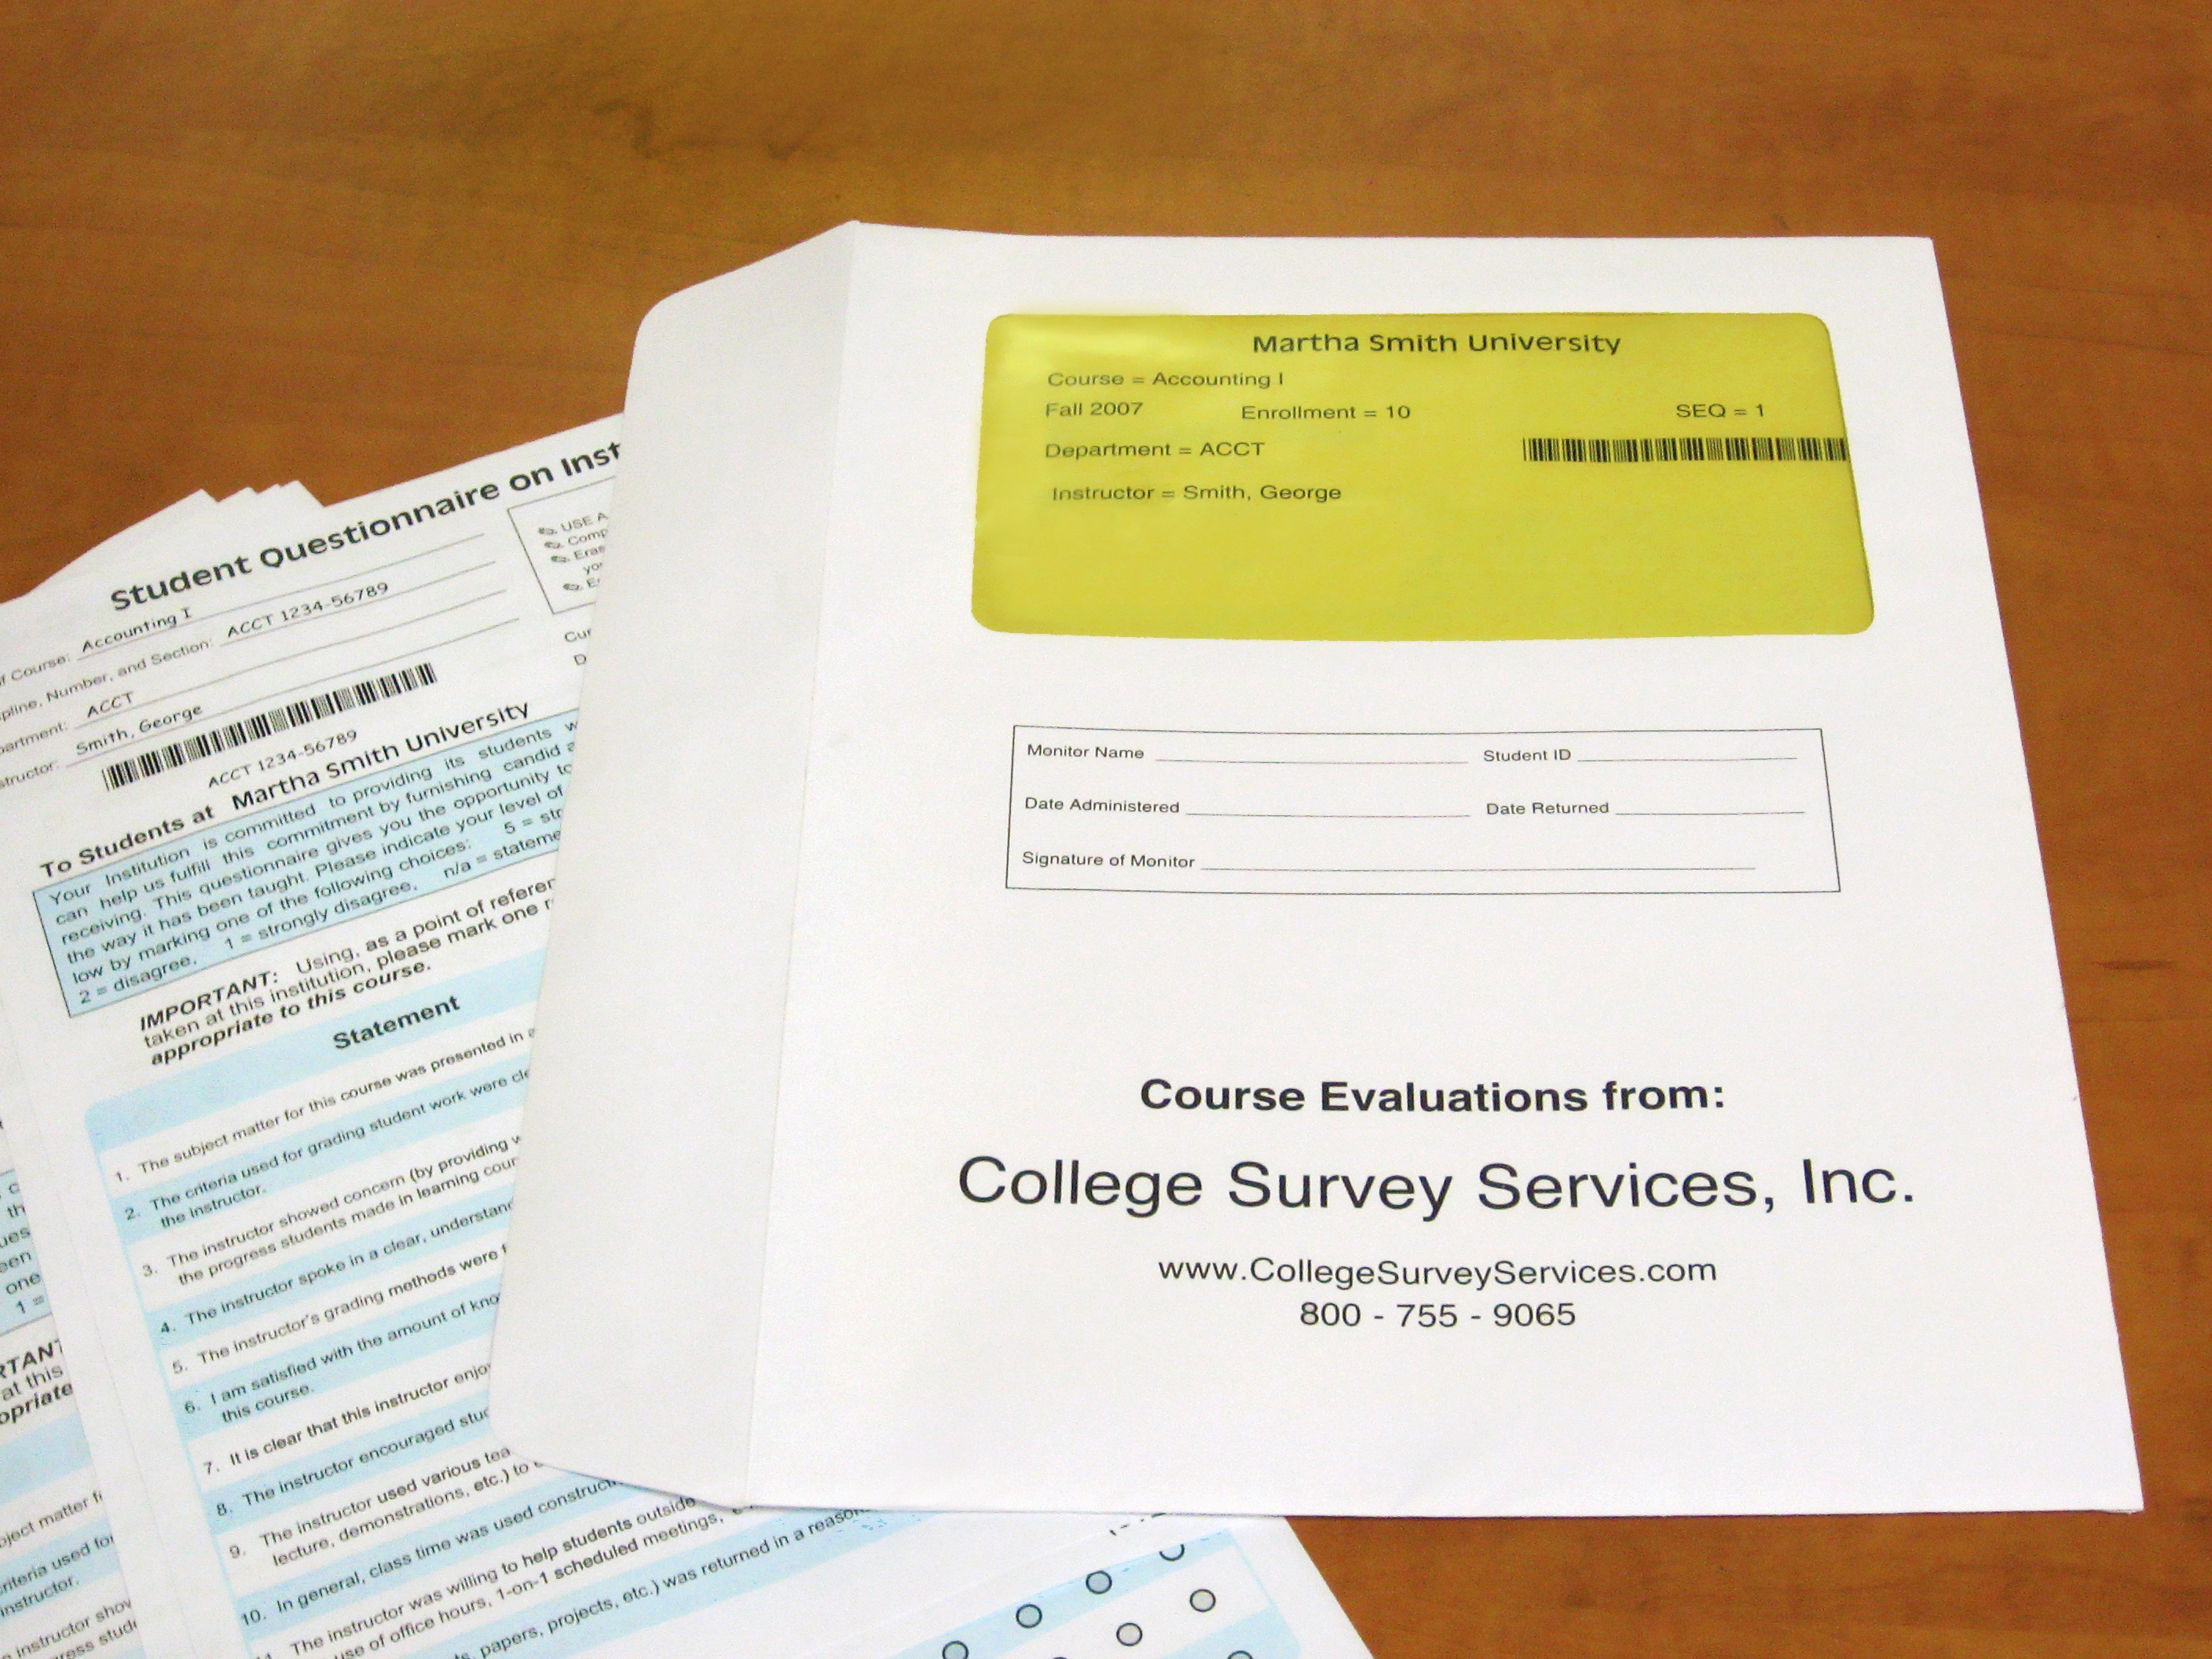 paper survey delivery college survey services the course instructor information counted sorted and placed in envelopes your precise instructions included college survey services will